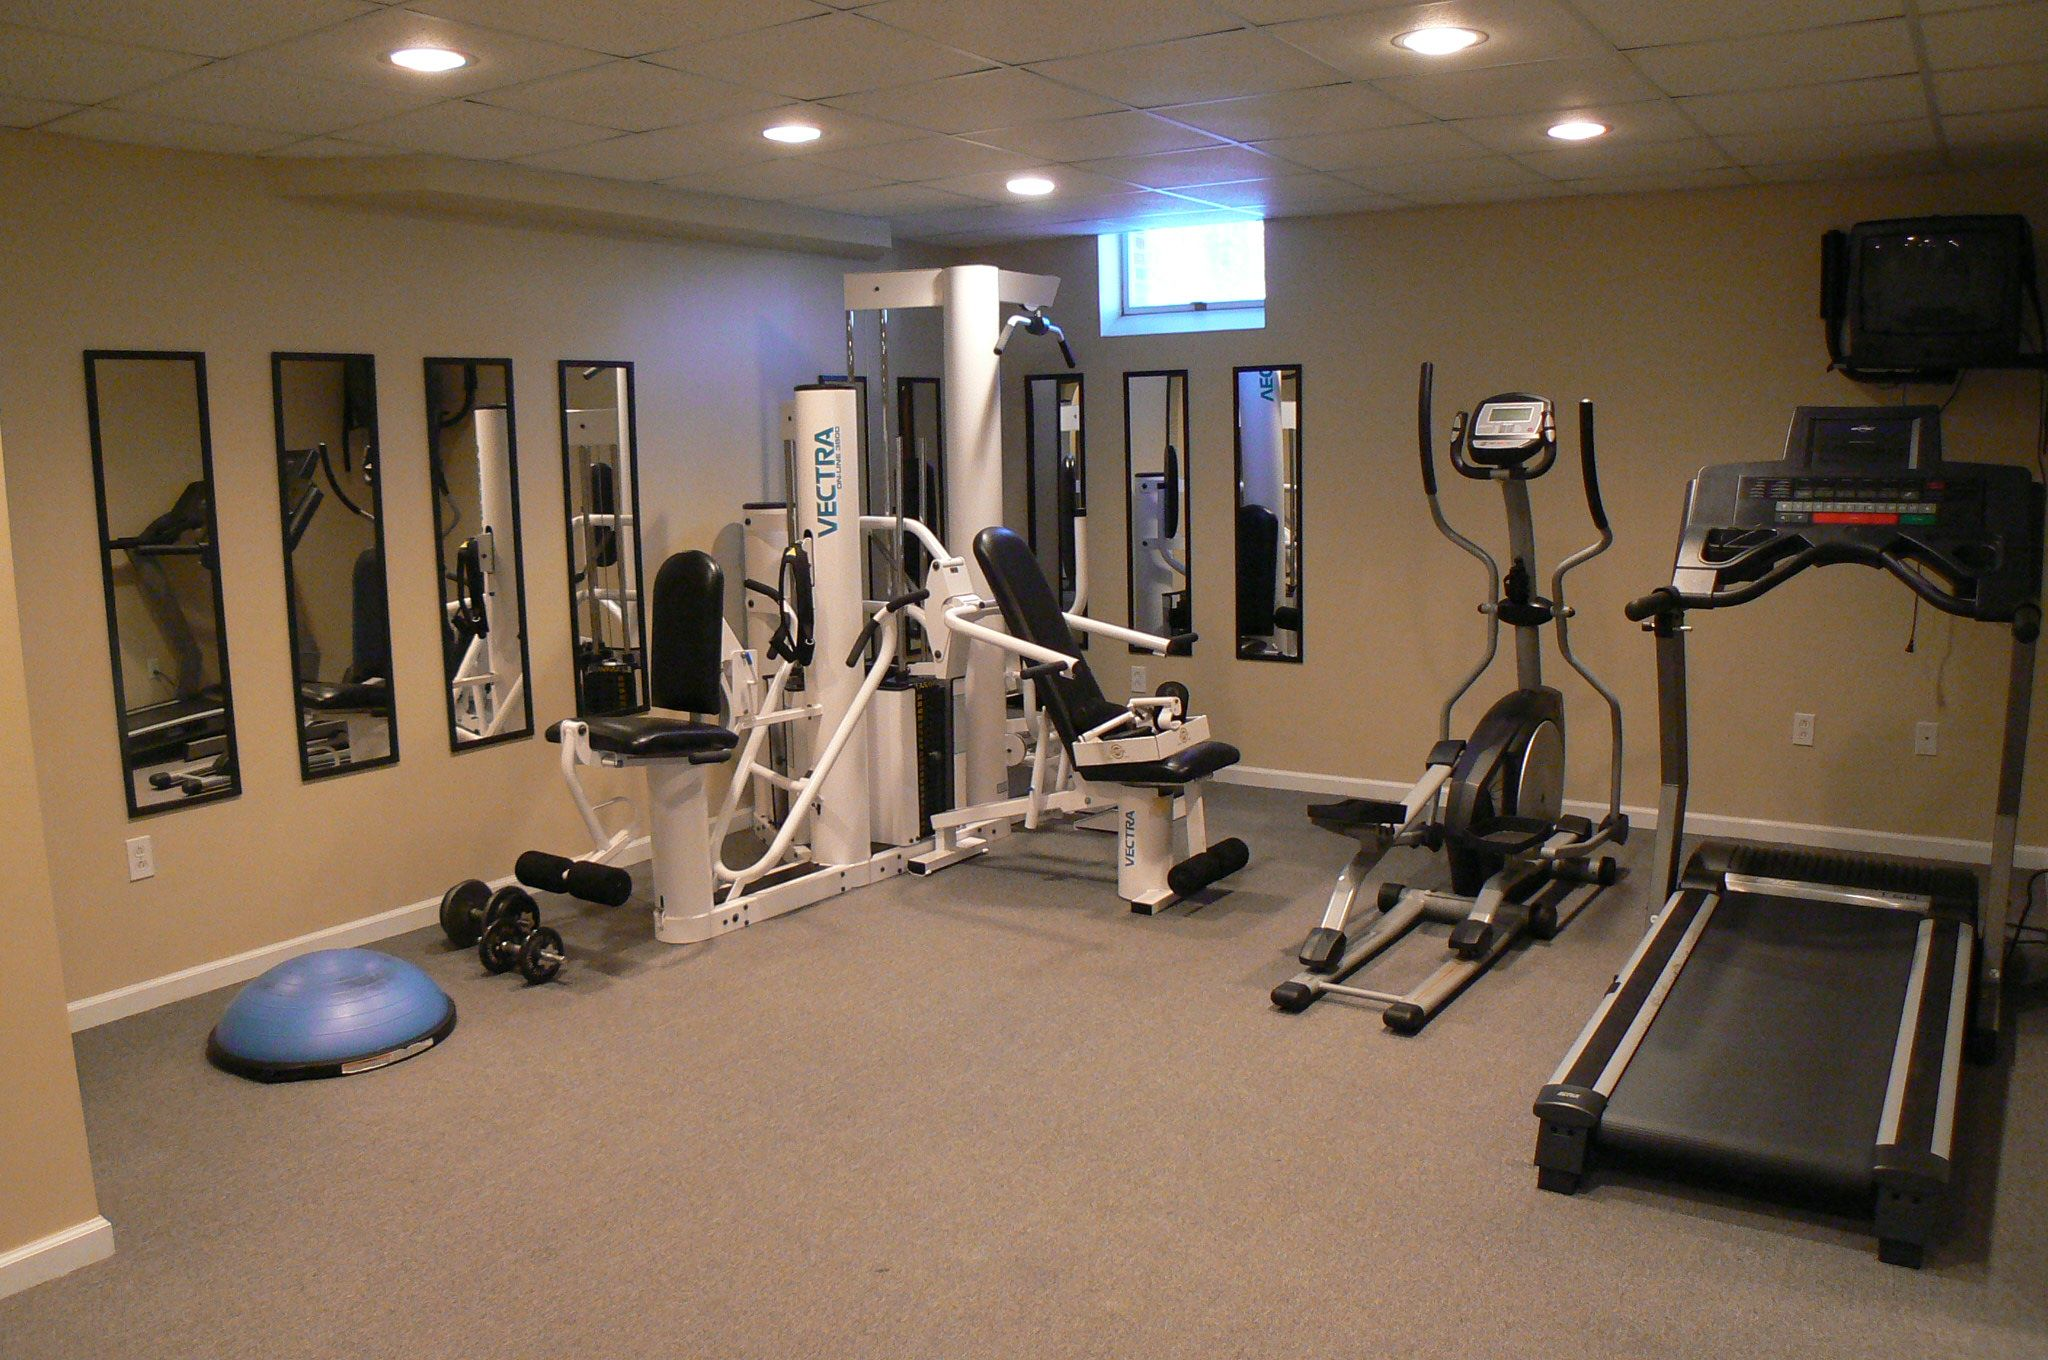 Pin By Alicia Goya On Basement Ideas Basement Gym Ideas Home Gym Design At Home Gym